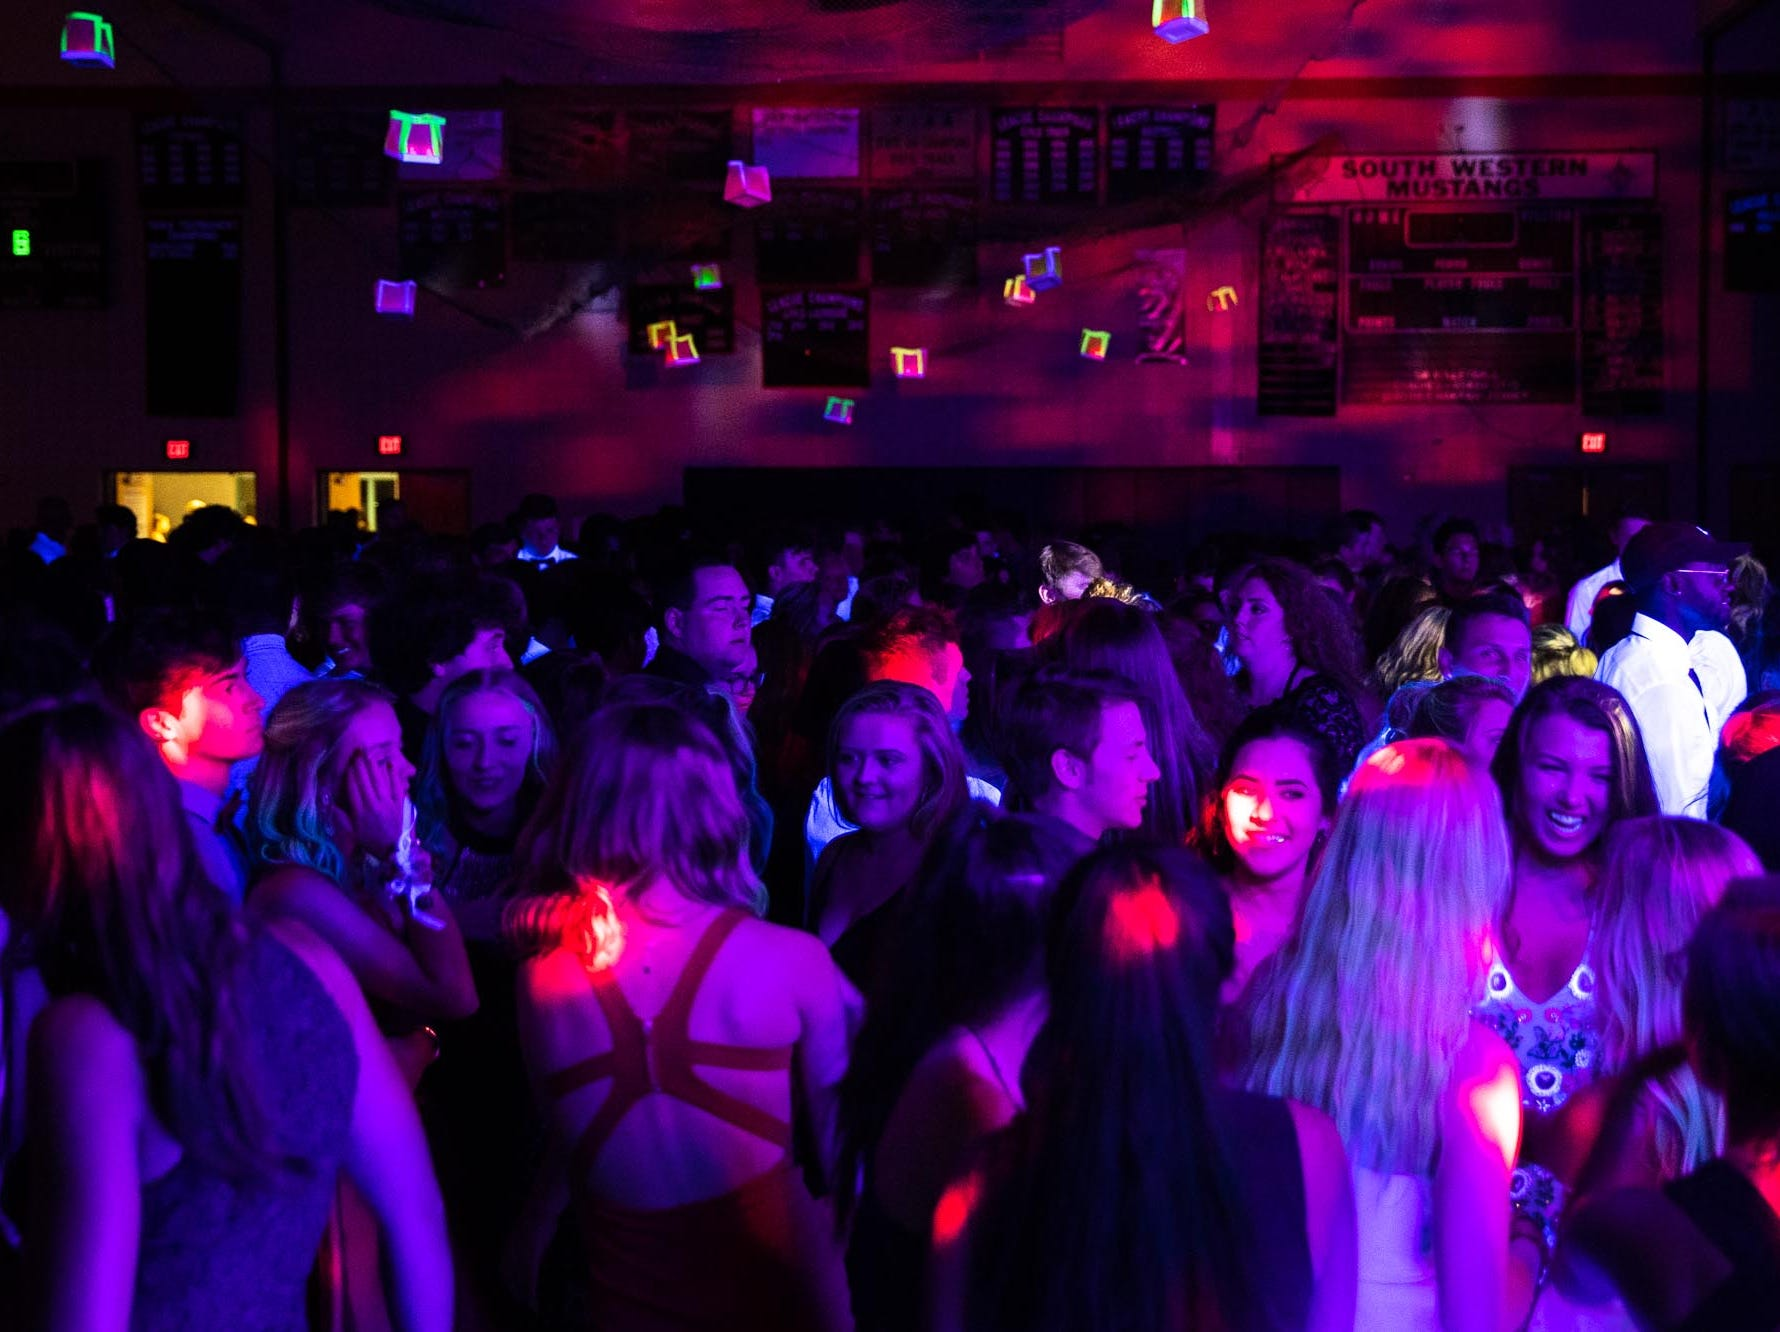 South Western students attend their homecoming dance, Saturday, Sept. 15, 2018, at South Western High School in Penn Township.